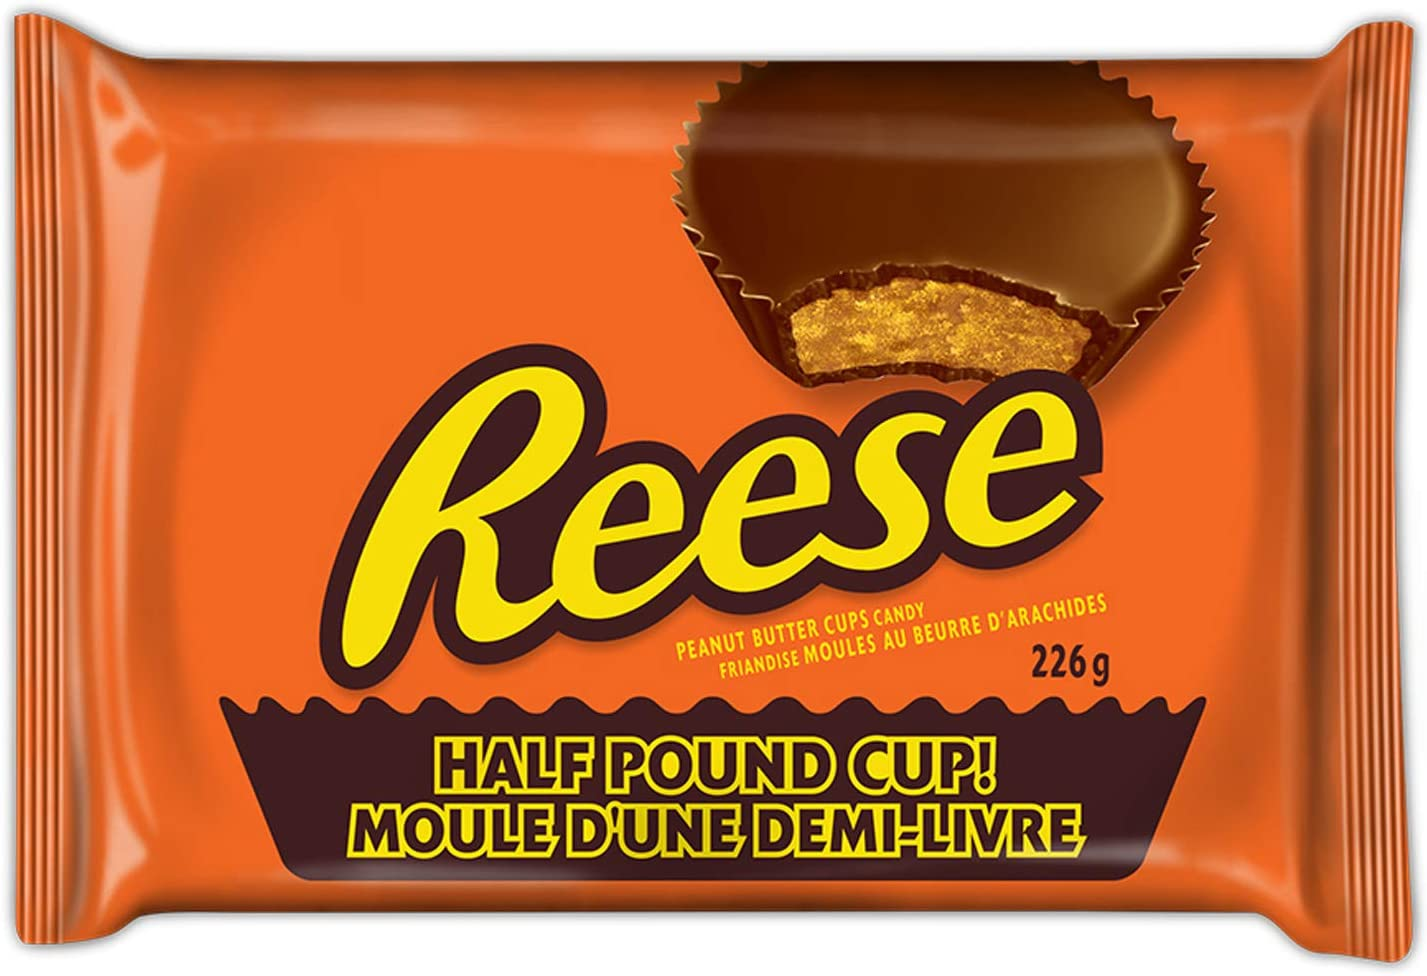 Reese Peanut Butter Cups Candy Easter Candy Half Pound Cup 226g Amazon Ca Grocery